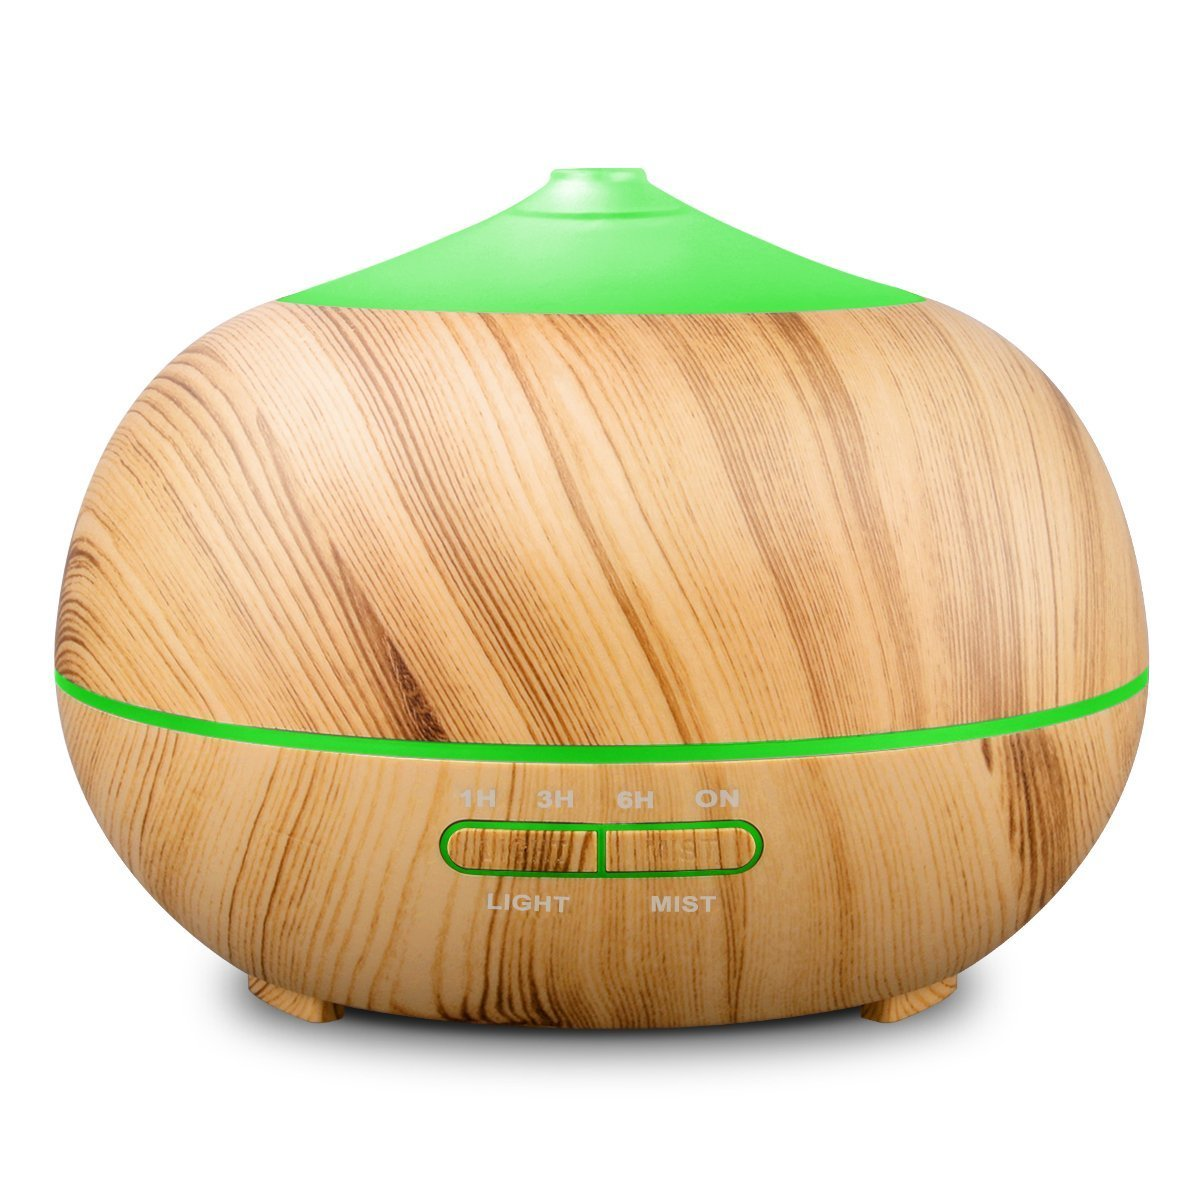 Tenswall 400ml Ultrasonic Aromatherapy Essential Oil Diffuser, Cool Mist Humidifier Whisper Quiet Operation - Yellow Wood Grain-Changing LED Light & Auto Shut-Off Function 4 Timer Settings